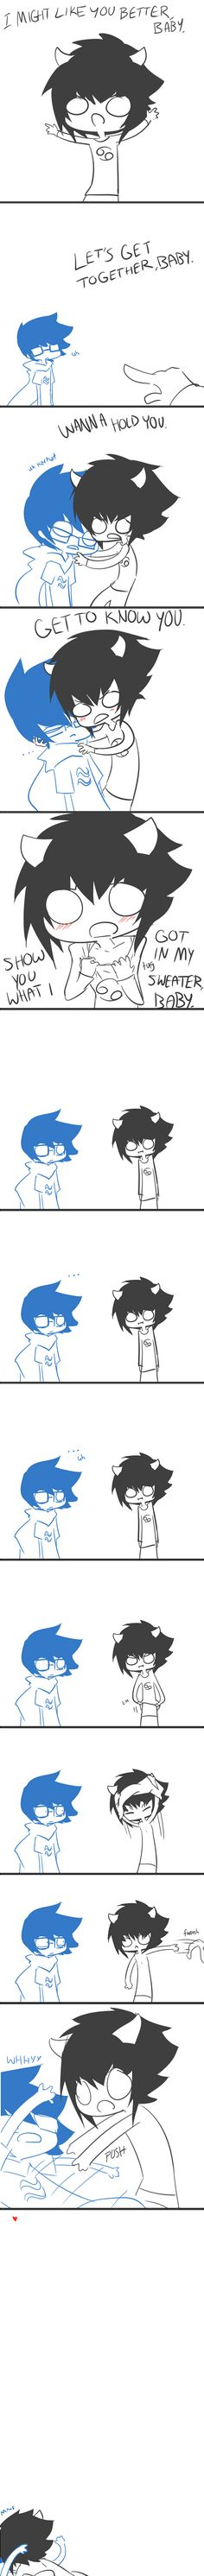 Tags: Anime, Comic, Homestuck, Karkat Vantas, John Egbert